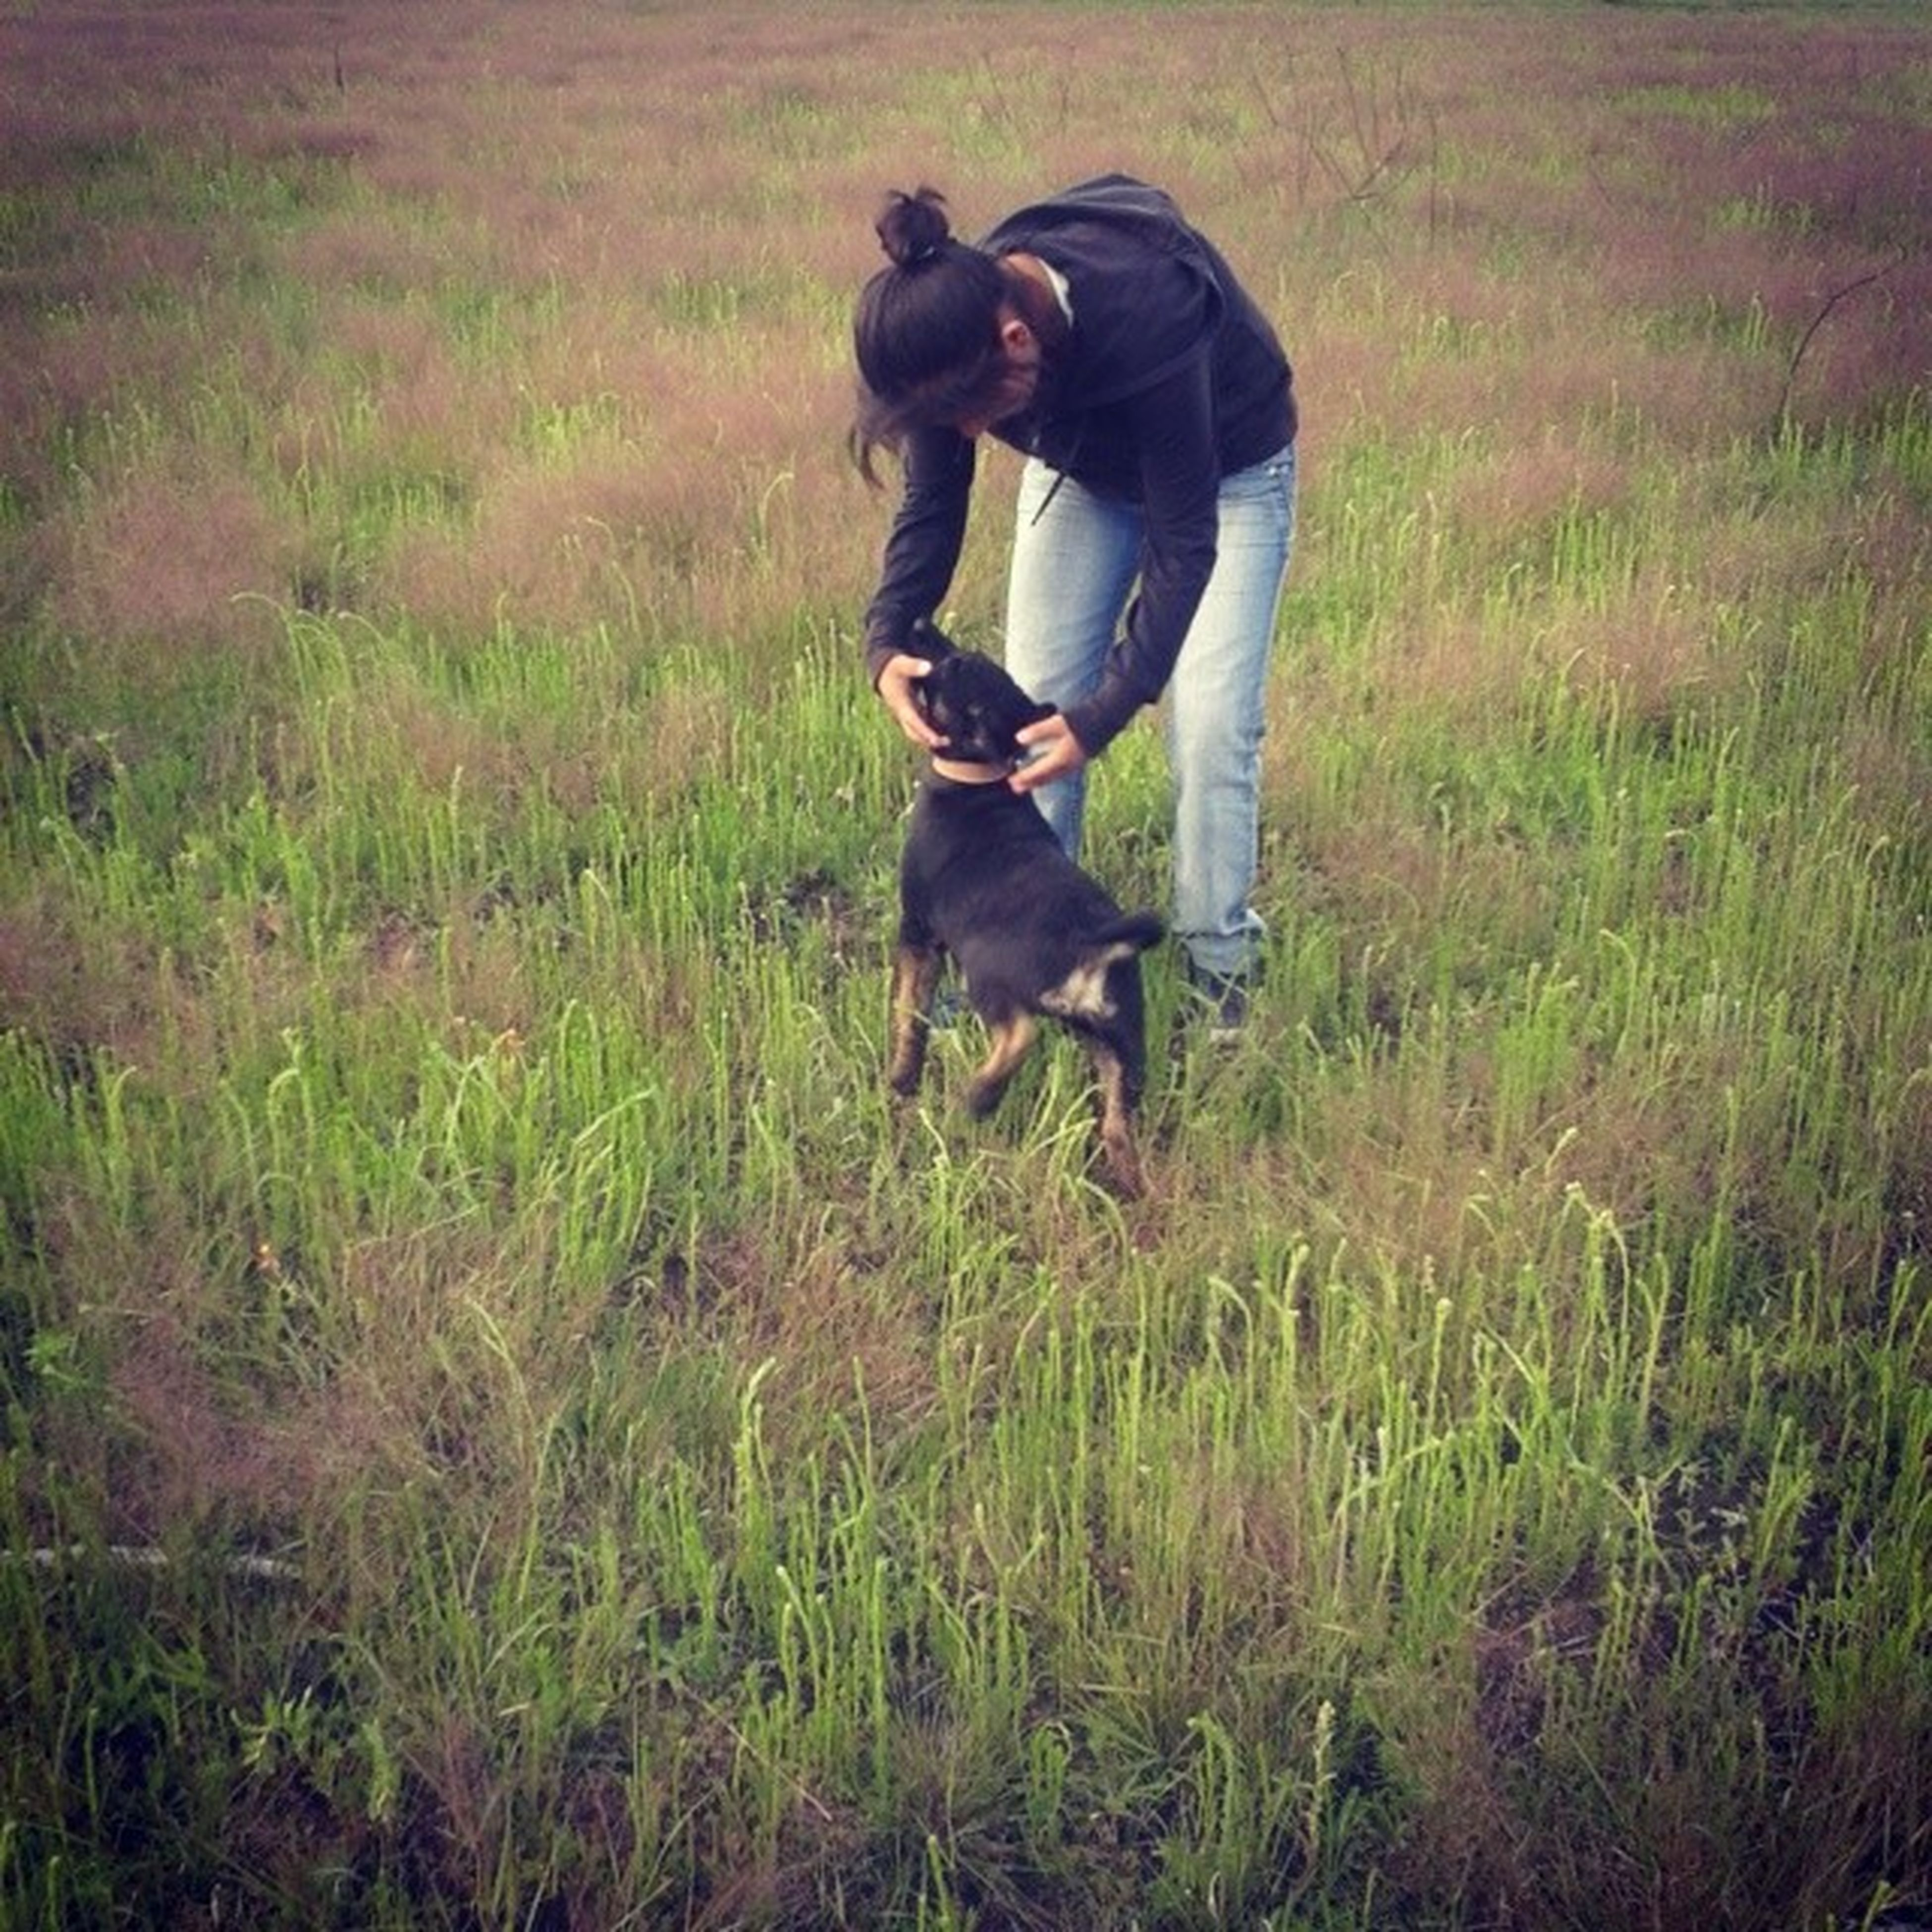 grass, field, grassy, one animal, animal themes, full length, lifestyles, dog, standing, domestic animals, mammal, leisure activity, men, casual clothing, day, side view, outdoors, nature